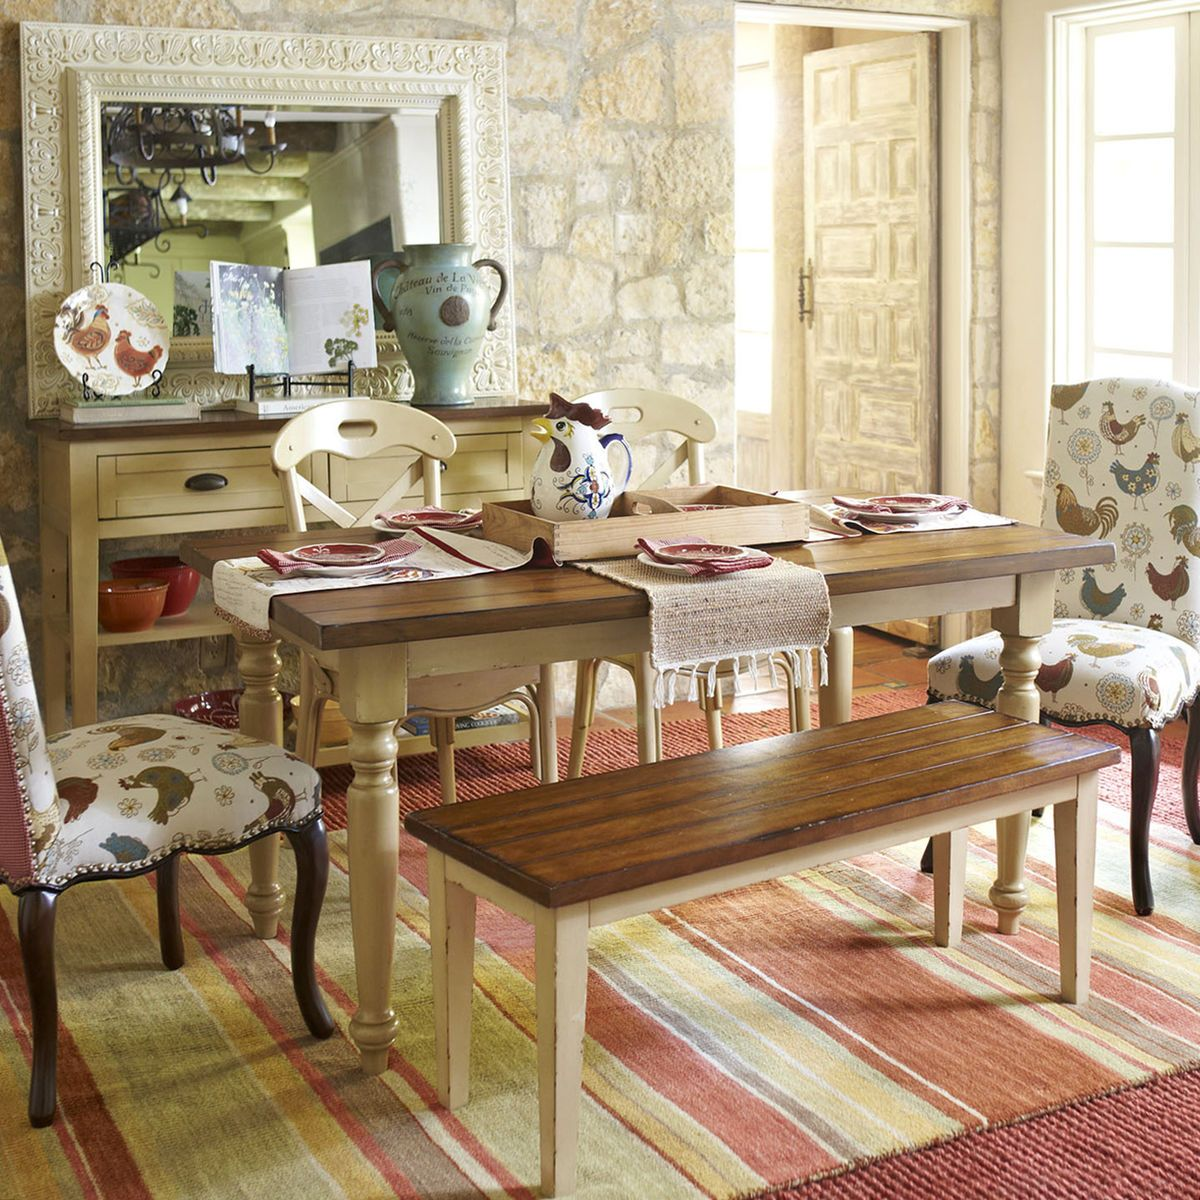 Delicieux Carmichael Antique Ivory Turned Leg Dining Table | Pier 1 Imports